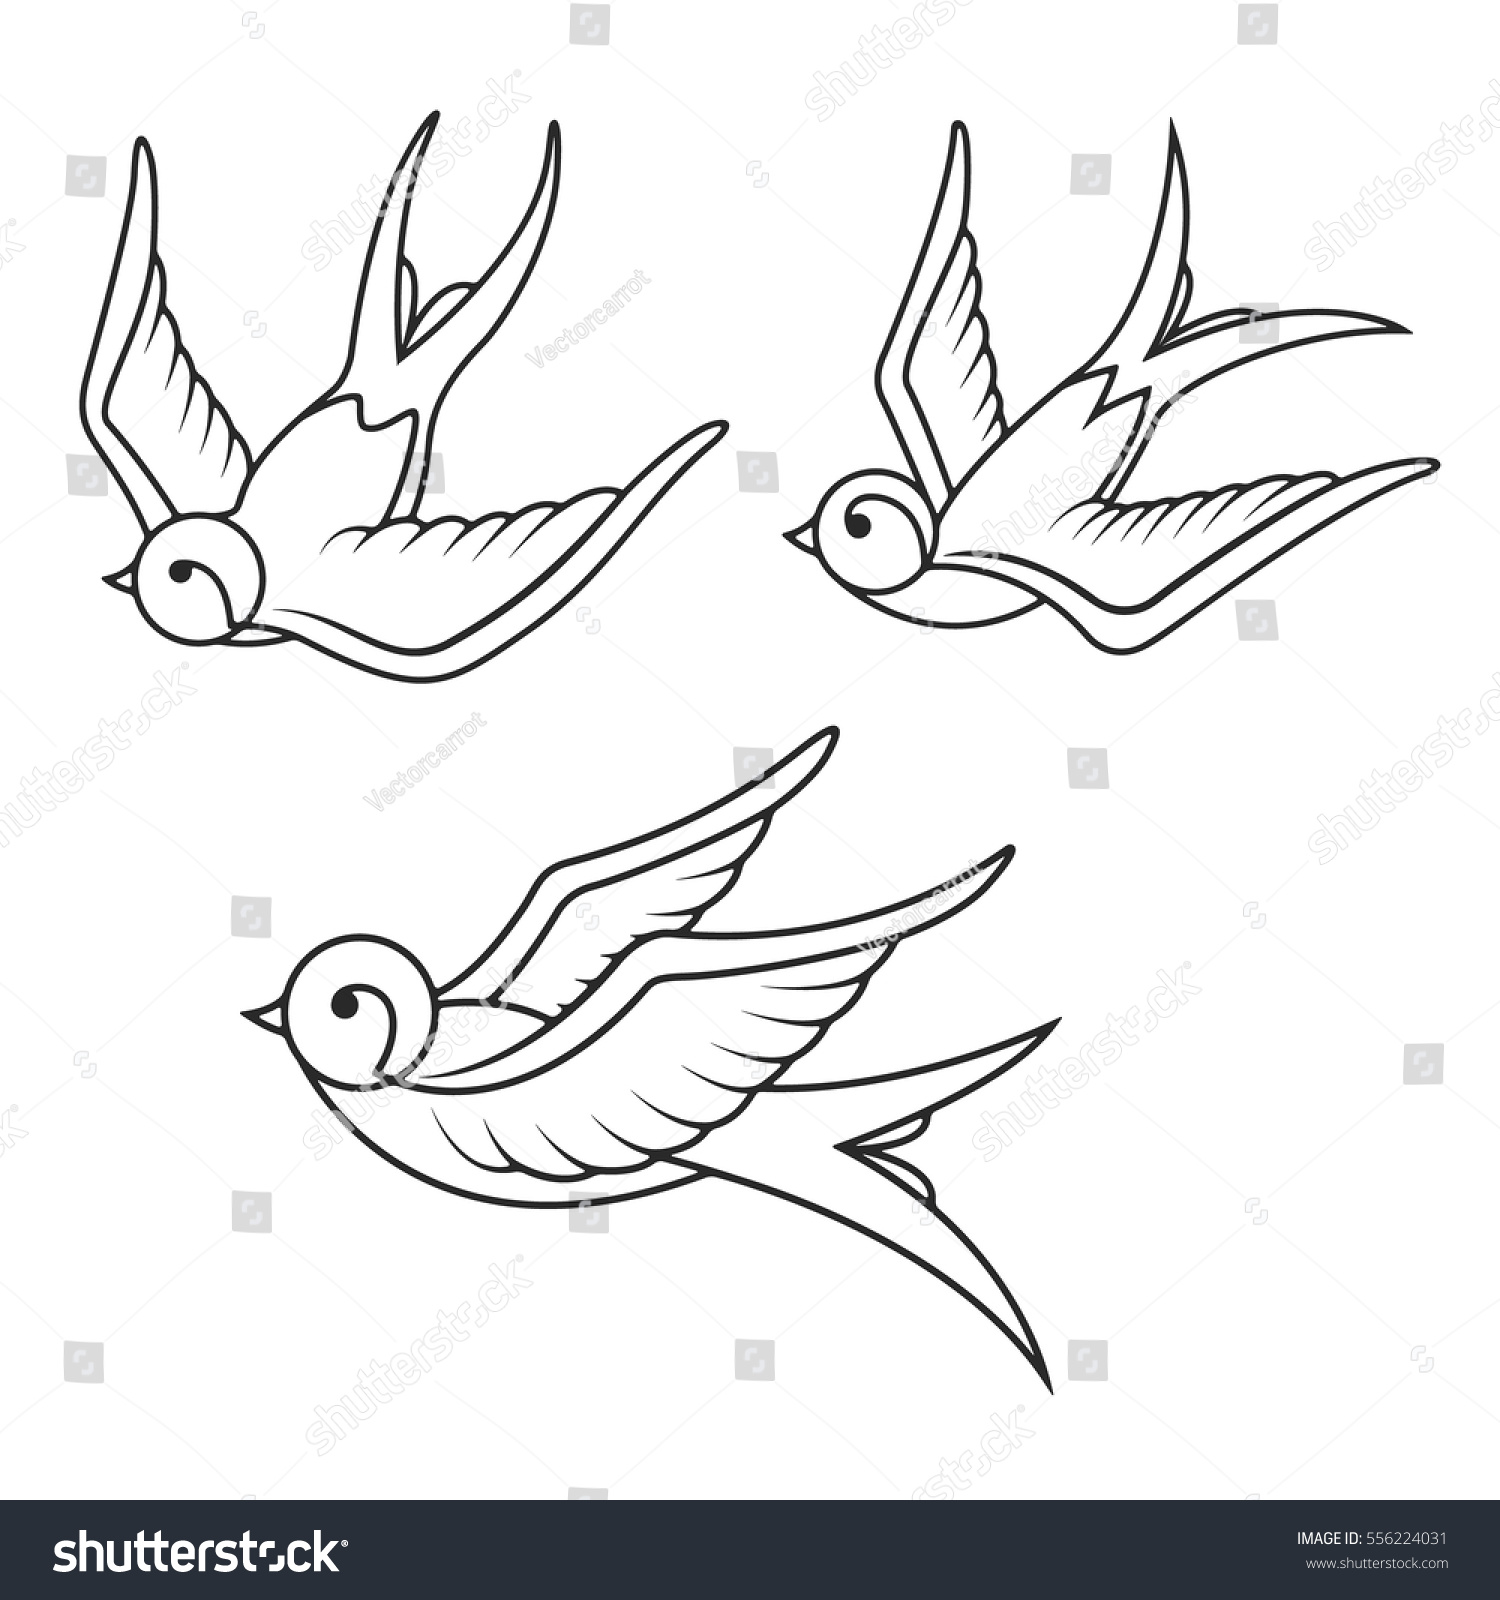 Set of sketches of flying swallows stock vector illustration - Set Of Swallow Tattoo Templates Isolated On White Background Bird Icons Vector Illustration